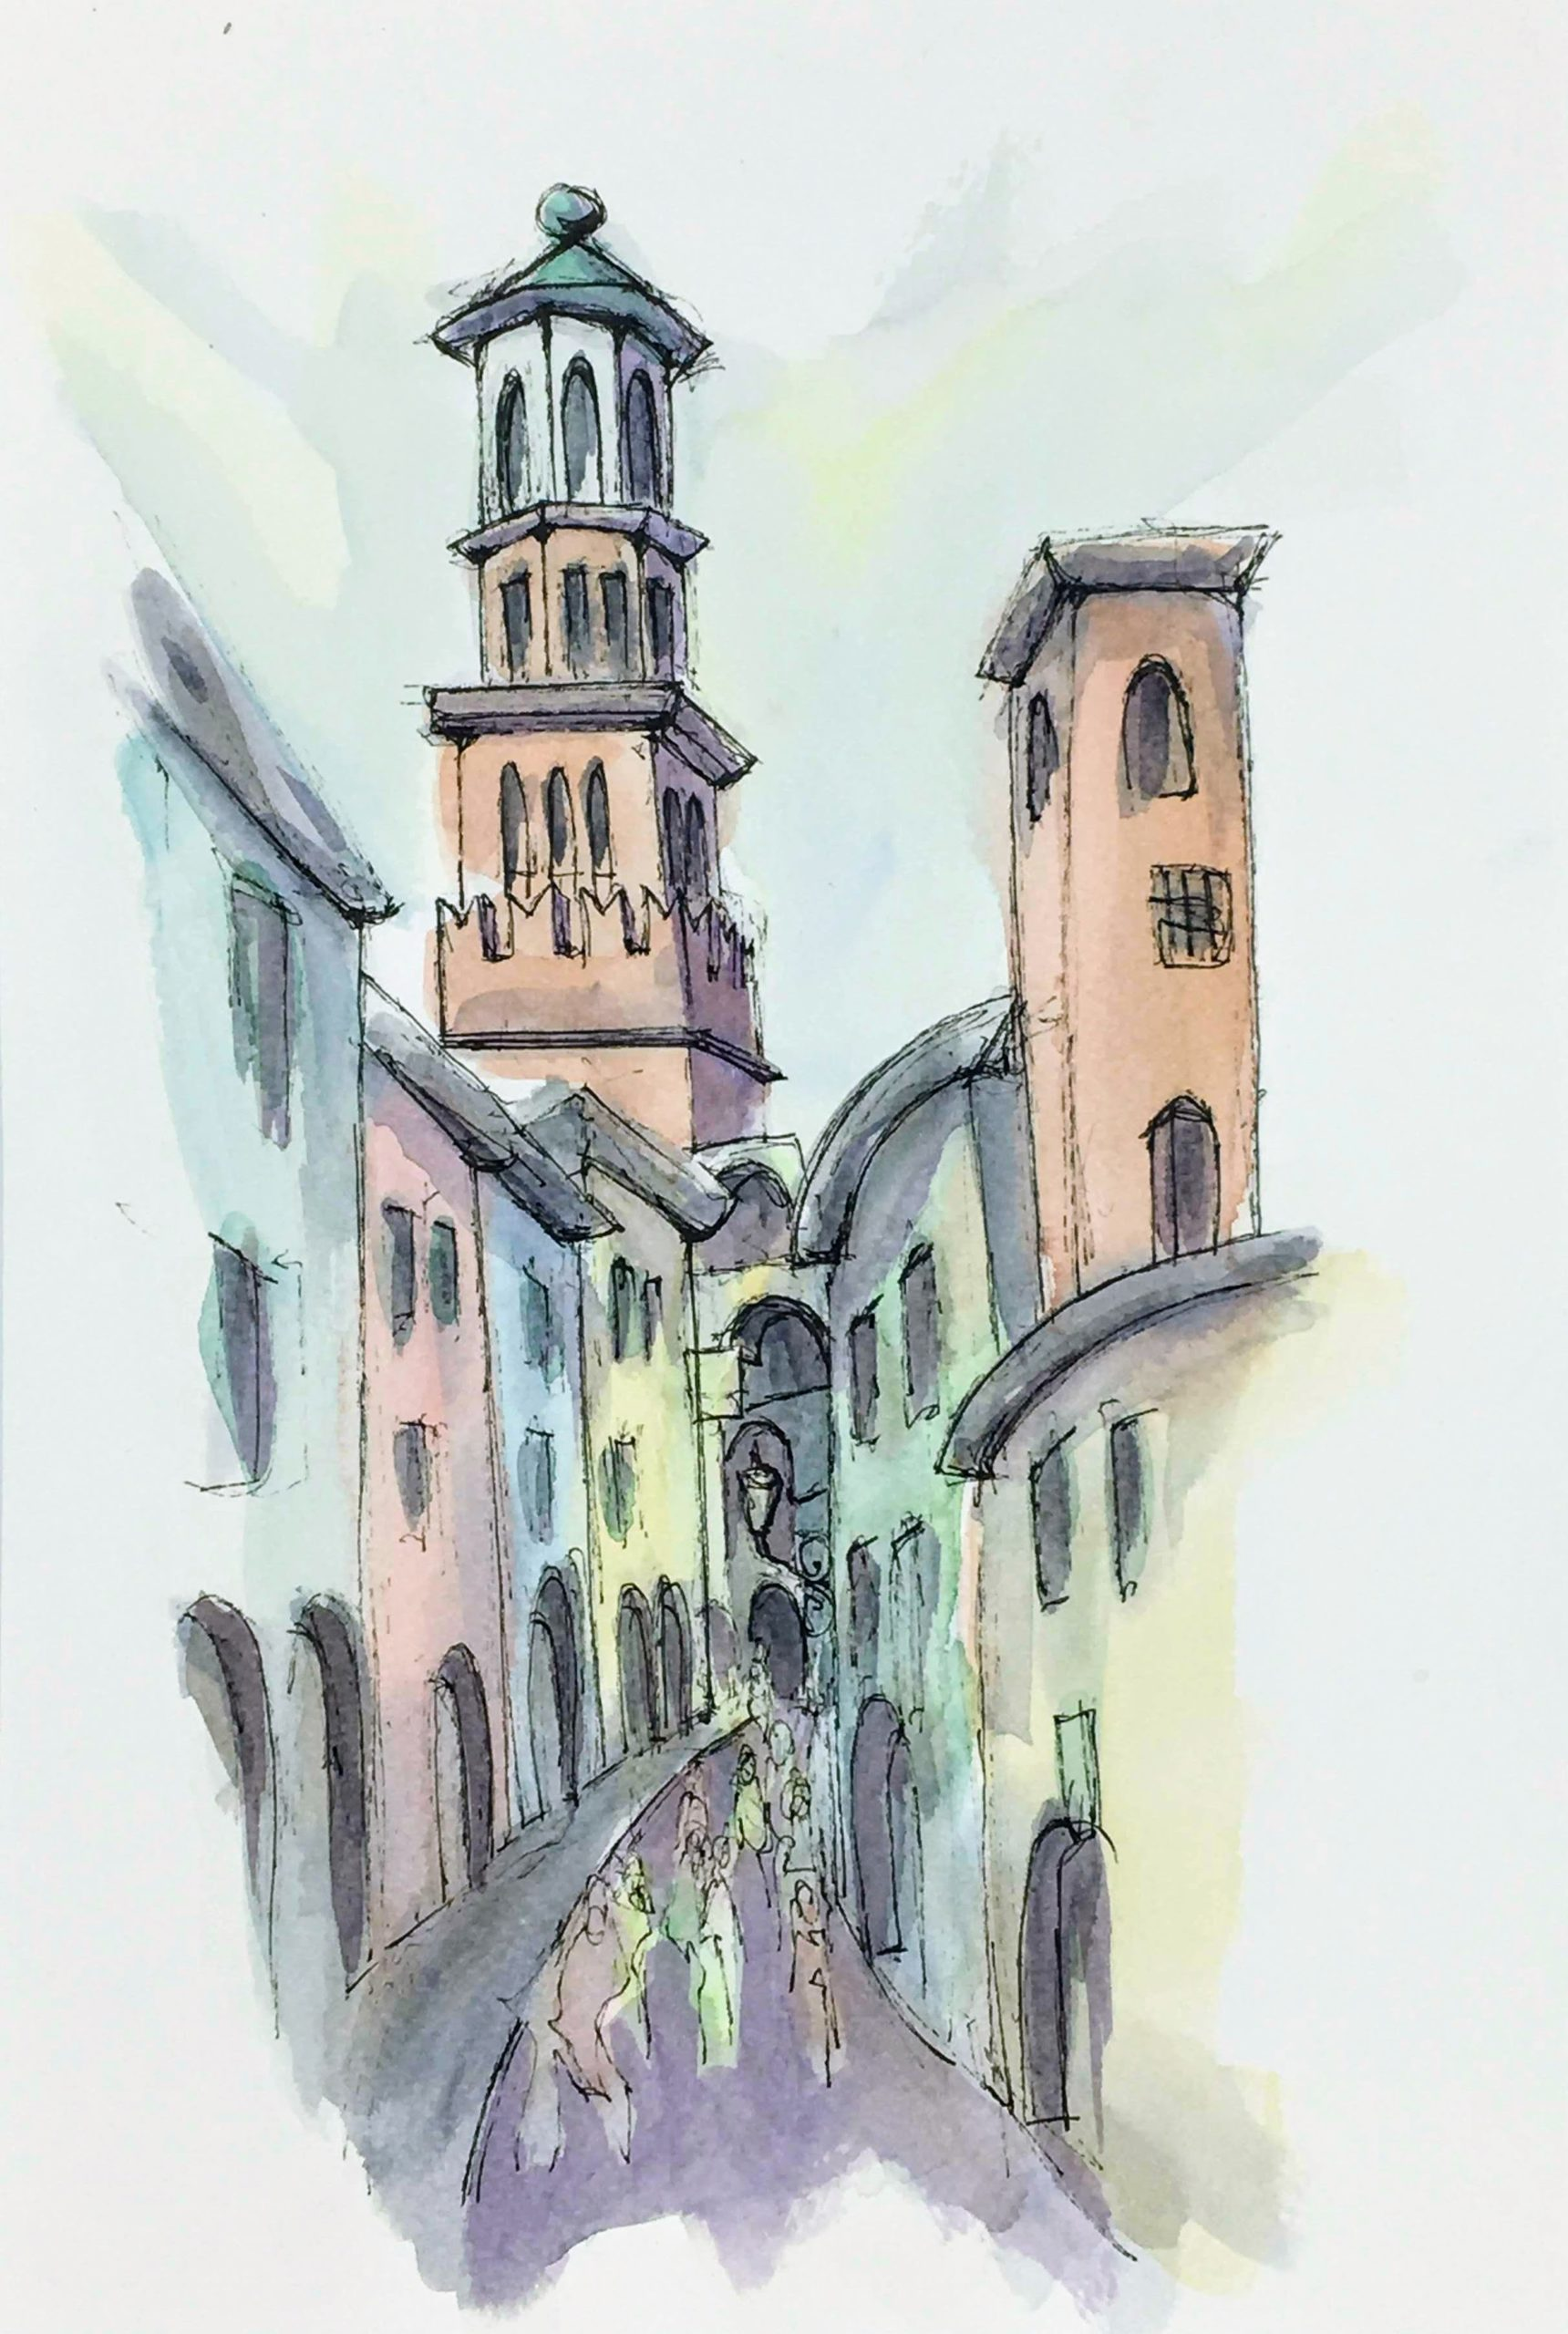 Painting of a view on the side streets of Verona